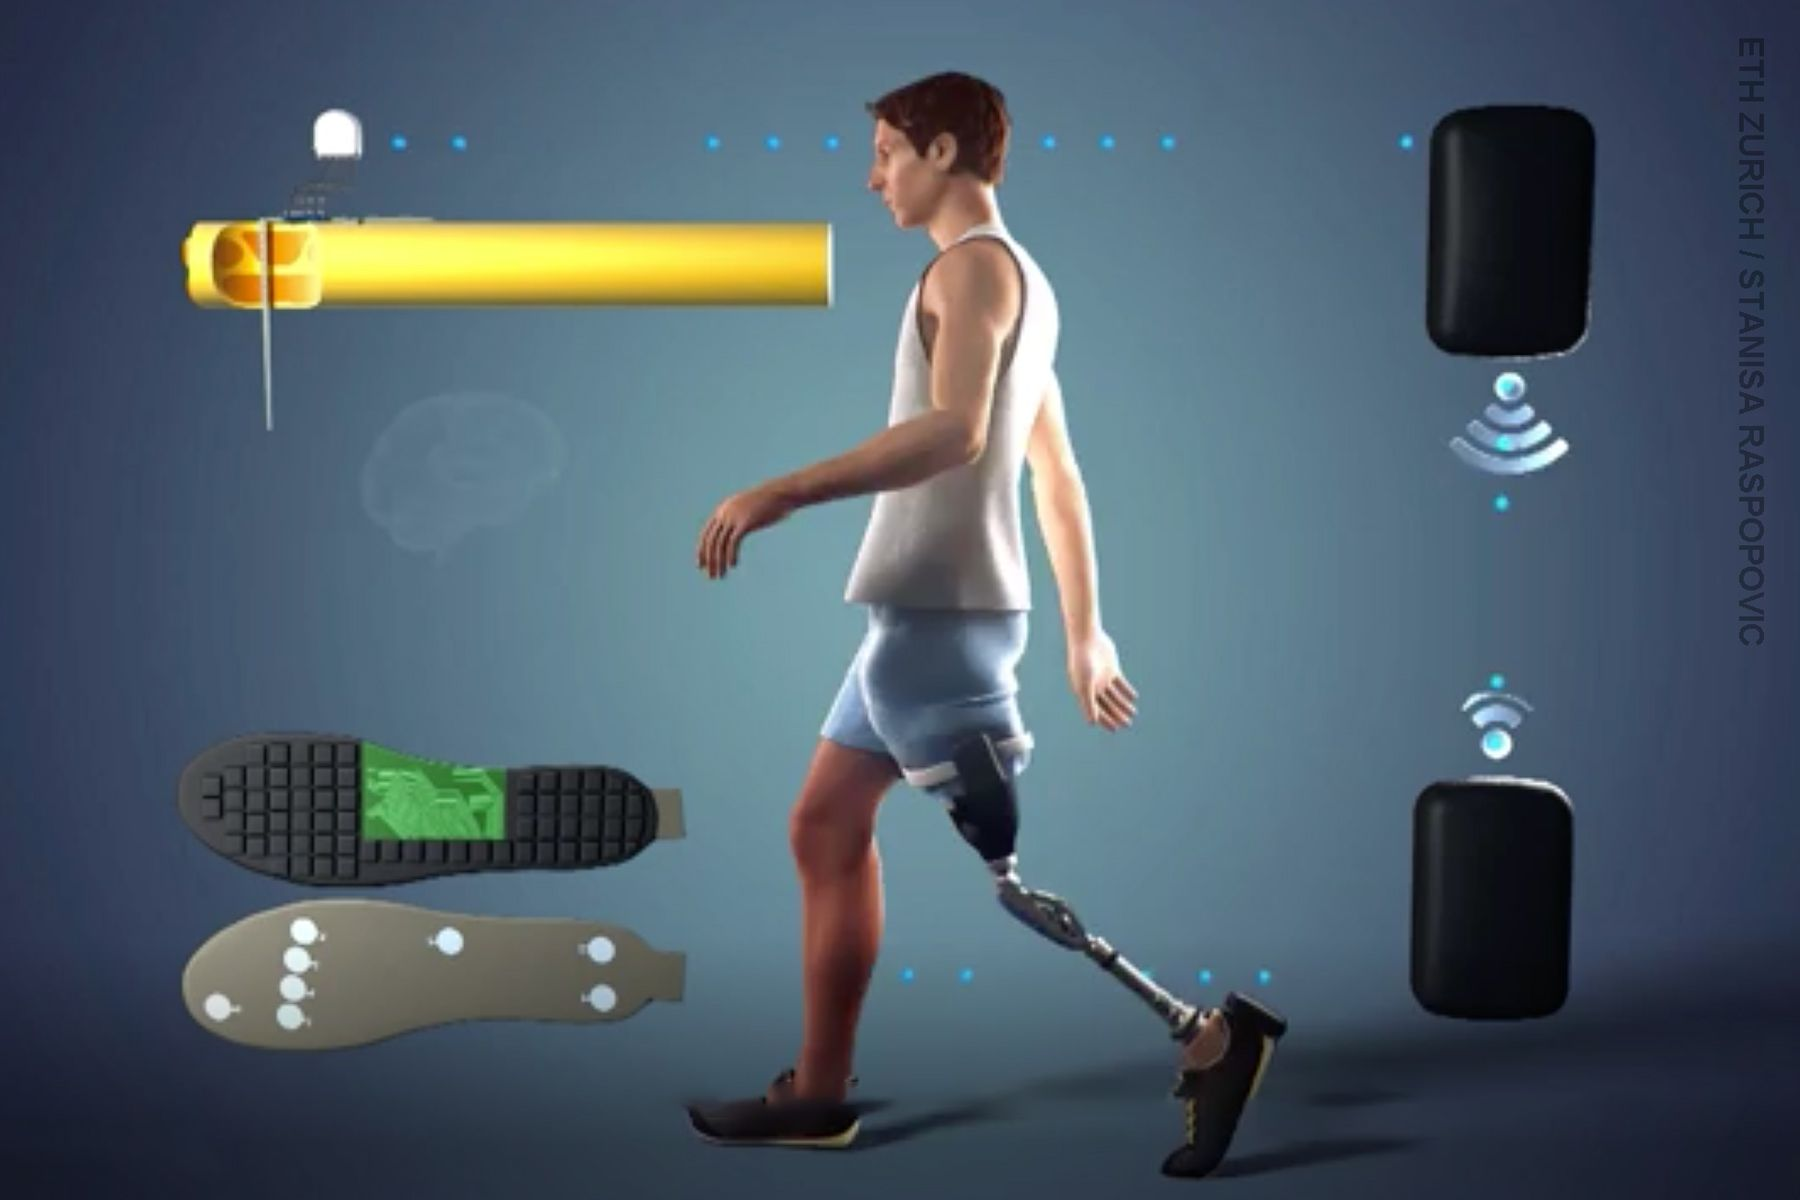 photo of prosthetic leg illustration